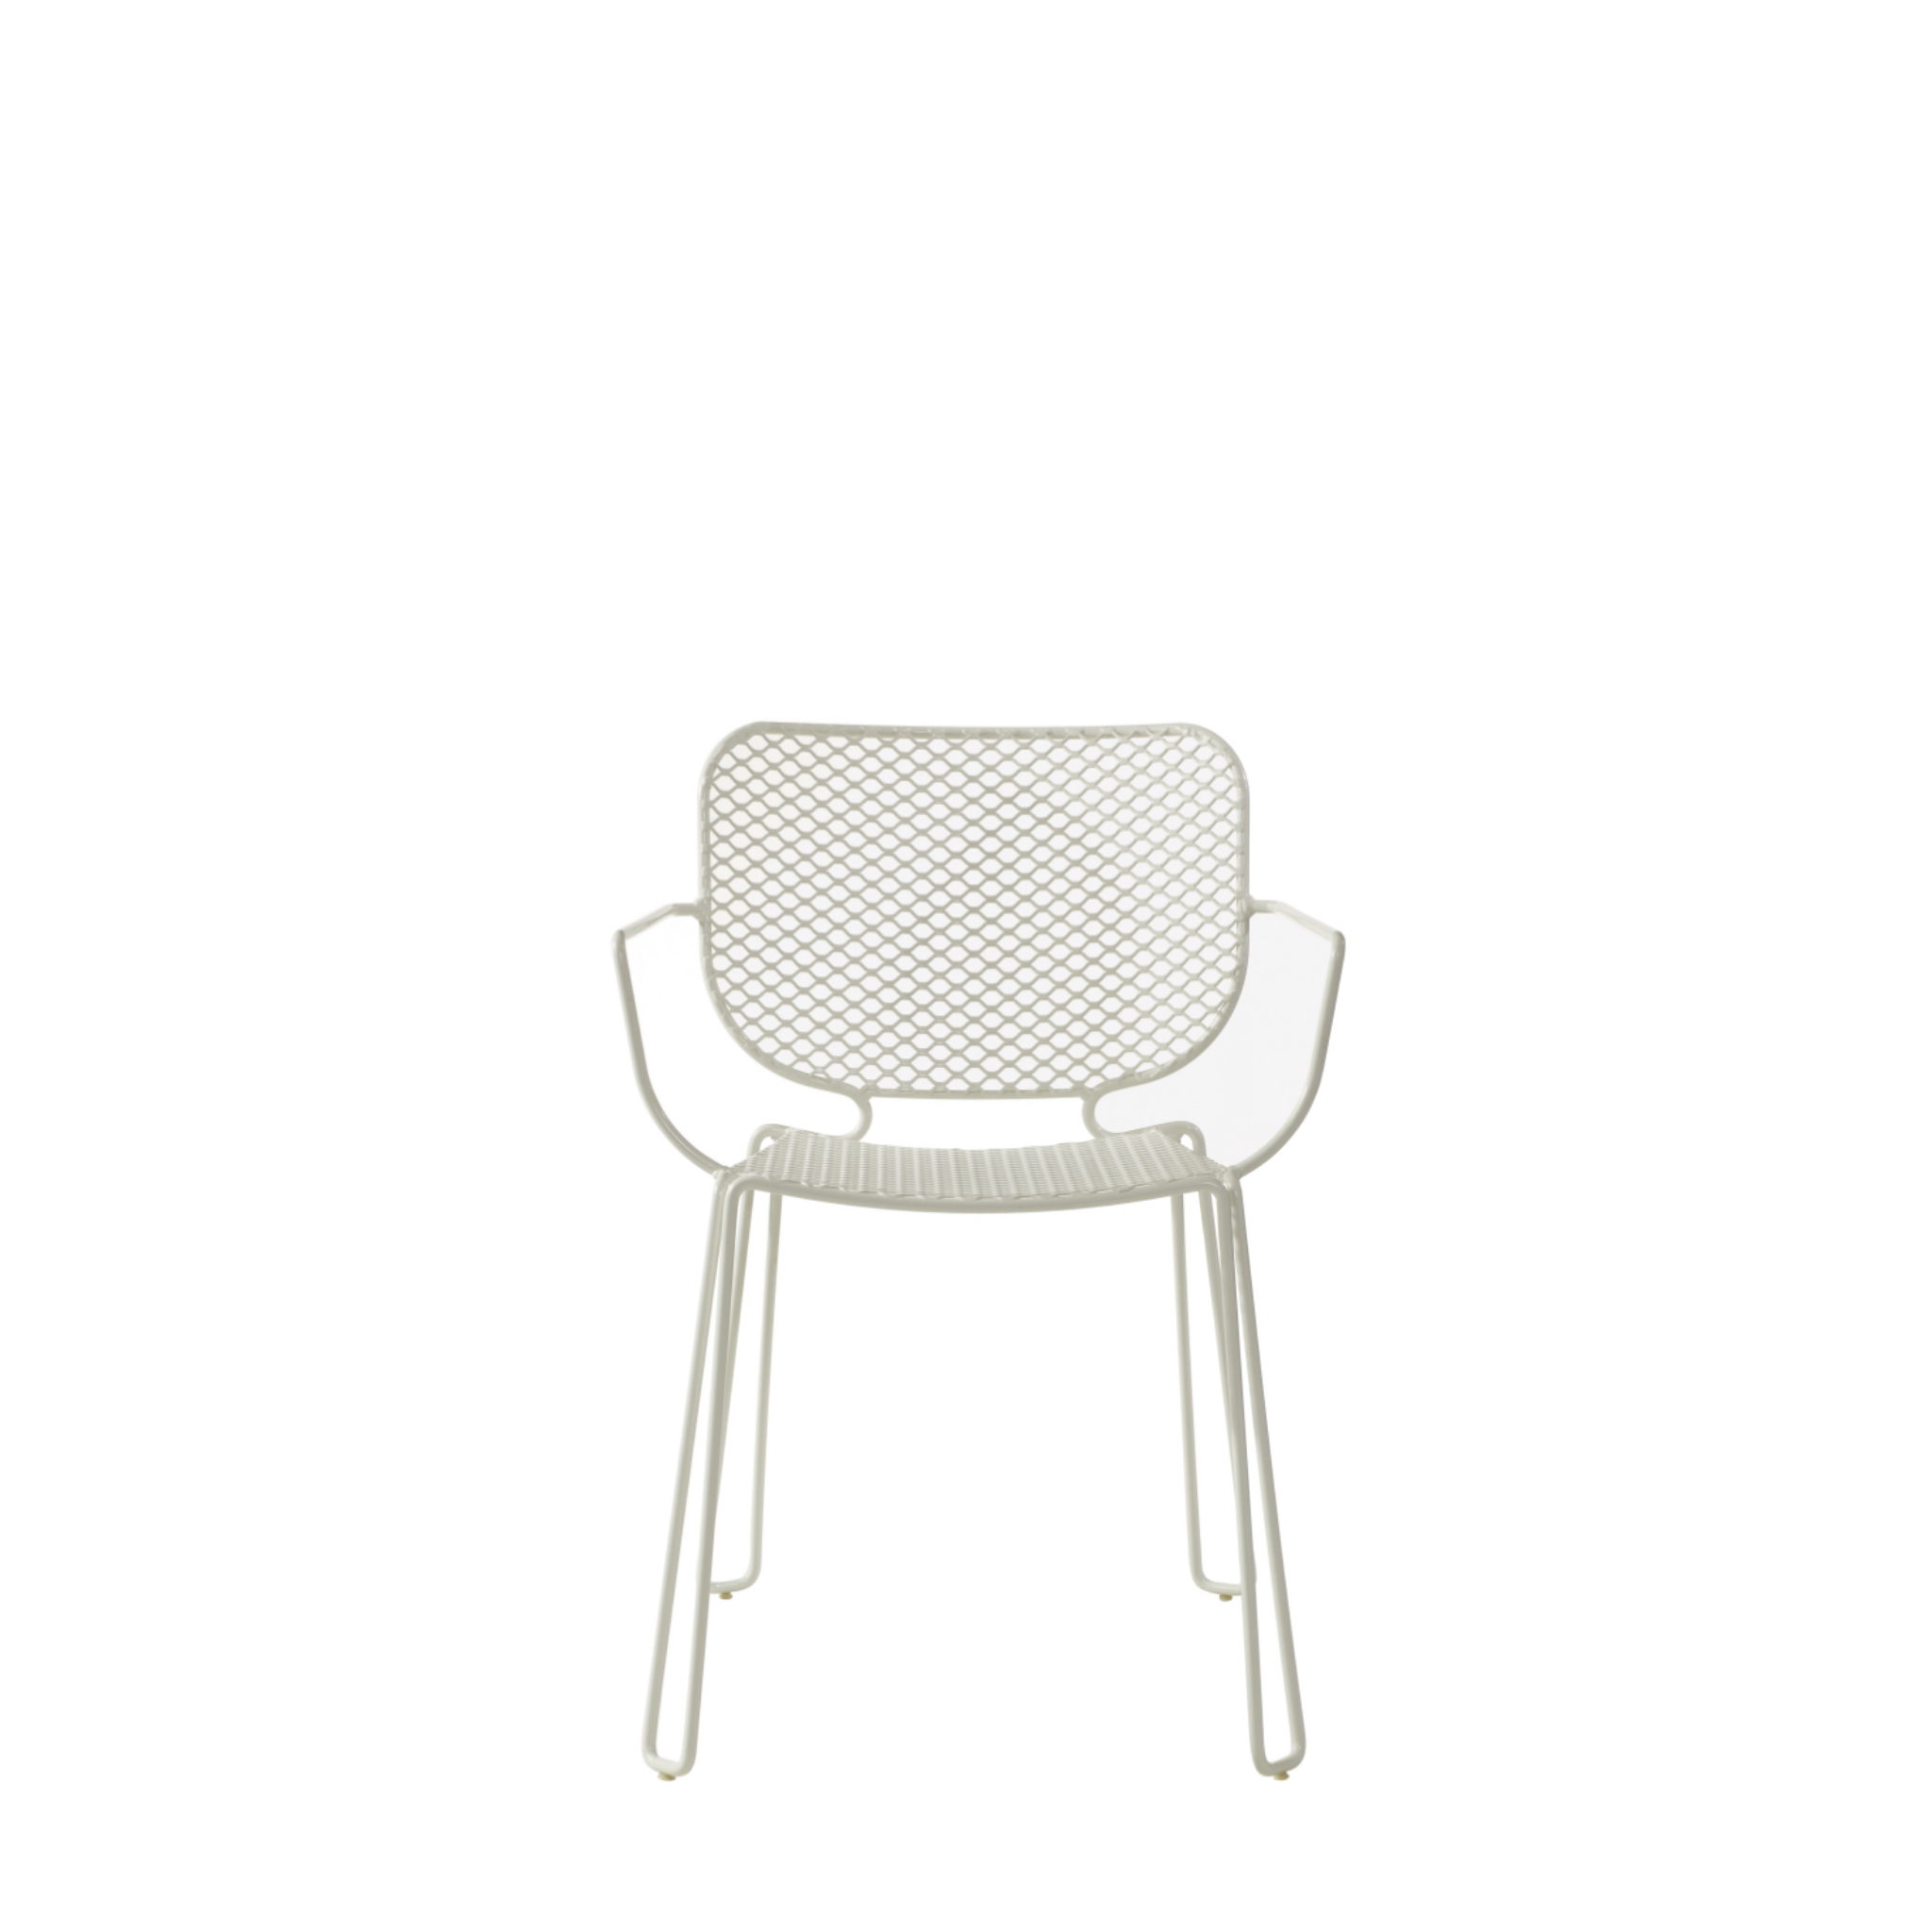 Metal mesh outdoor chair finished in white with matching legs